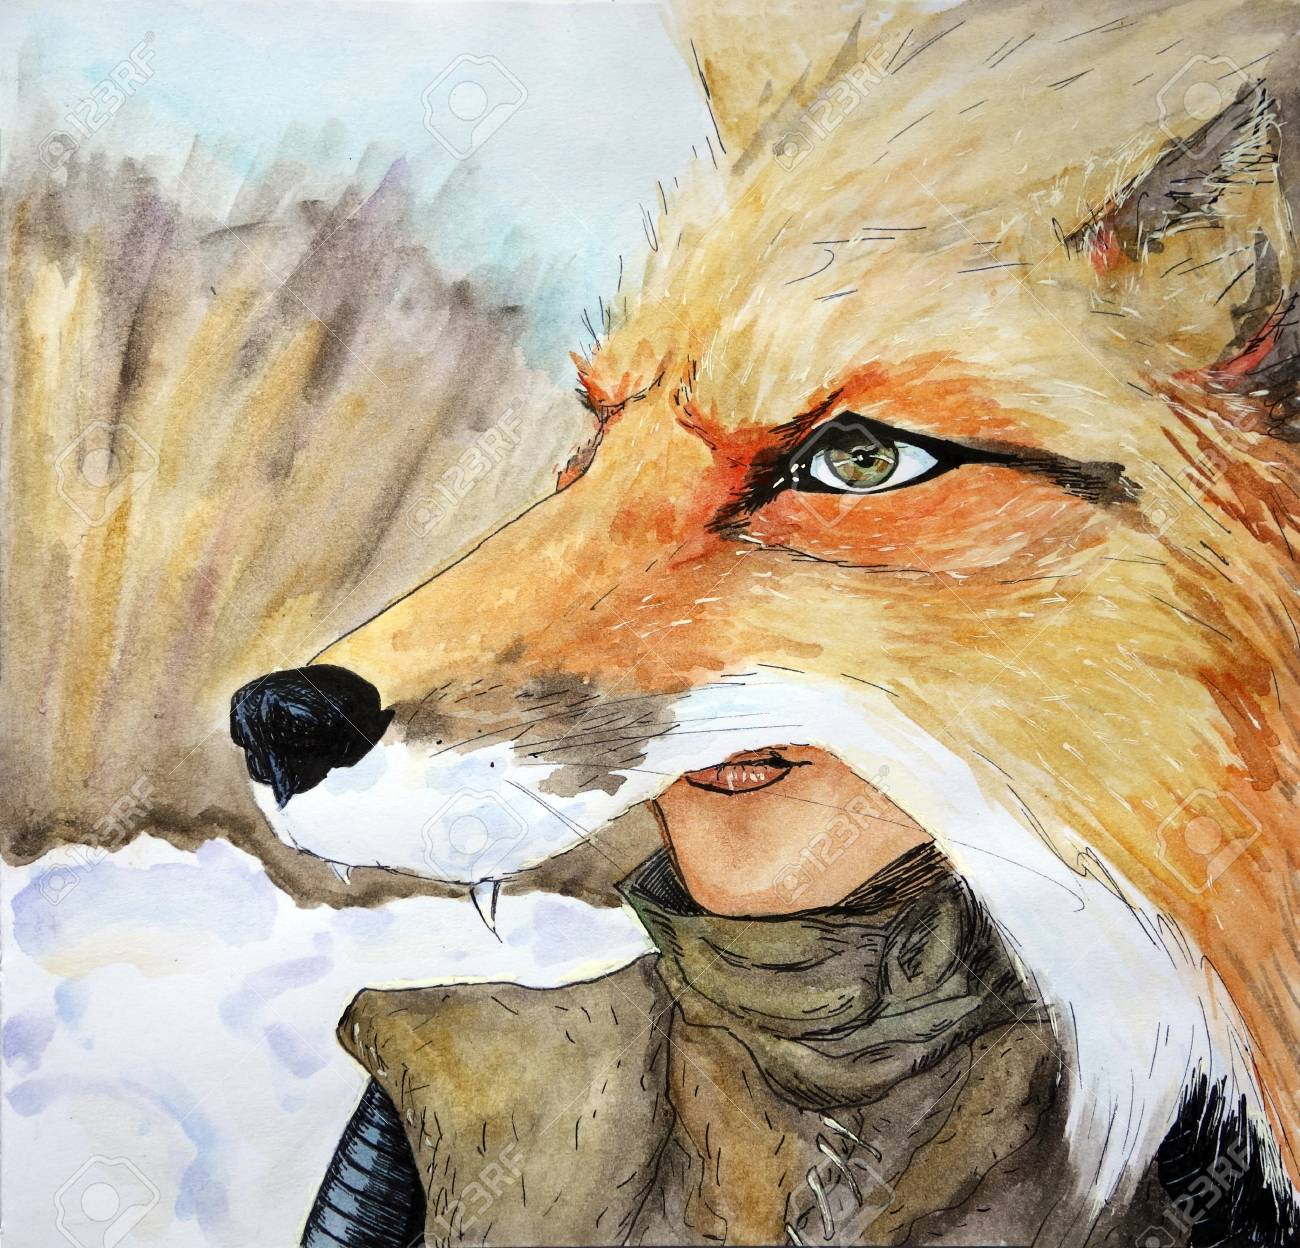 forest witch shifting her shape into a giant fox in the snowy